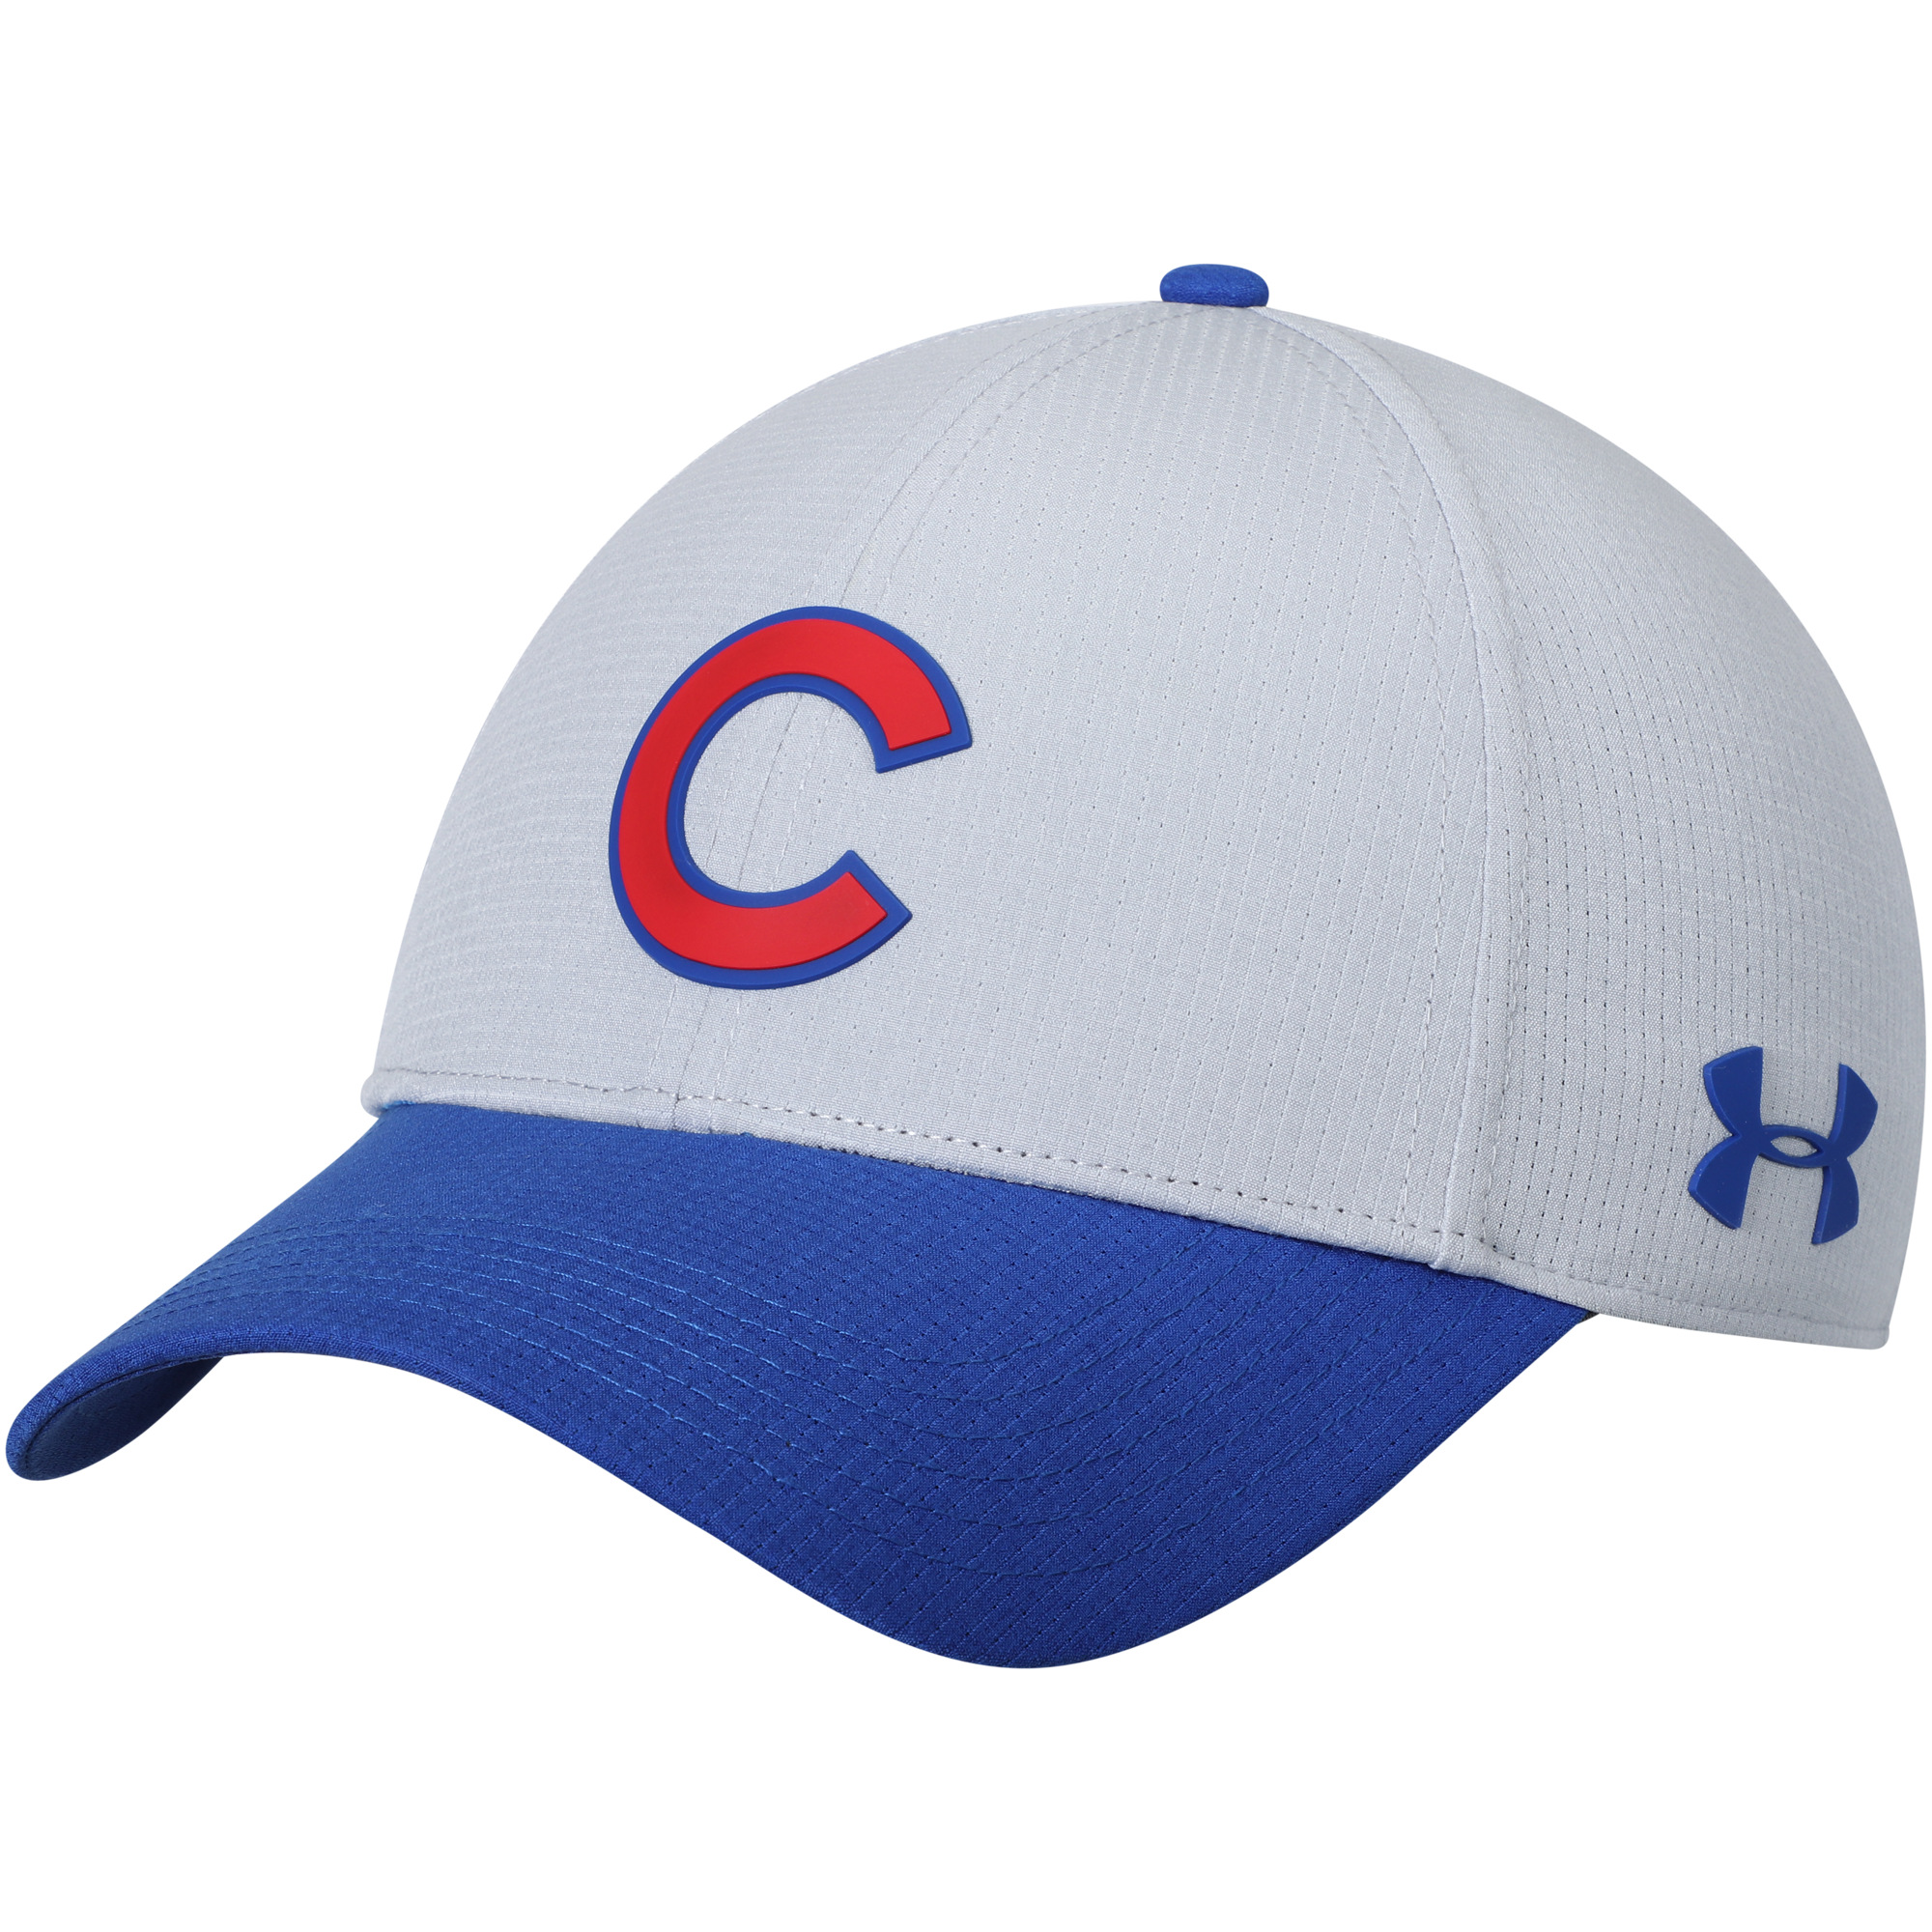 fb94664920d canada product image chicago cubs under armour mlb driver cap 2.0  adjustable hat gray osfa edc05